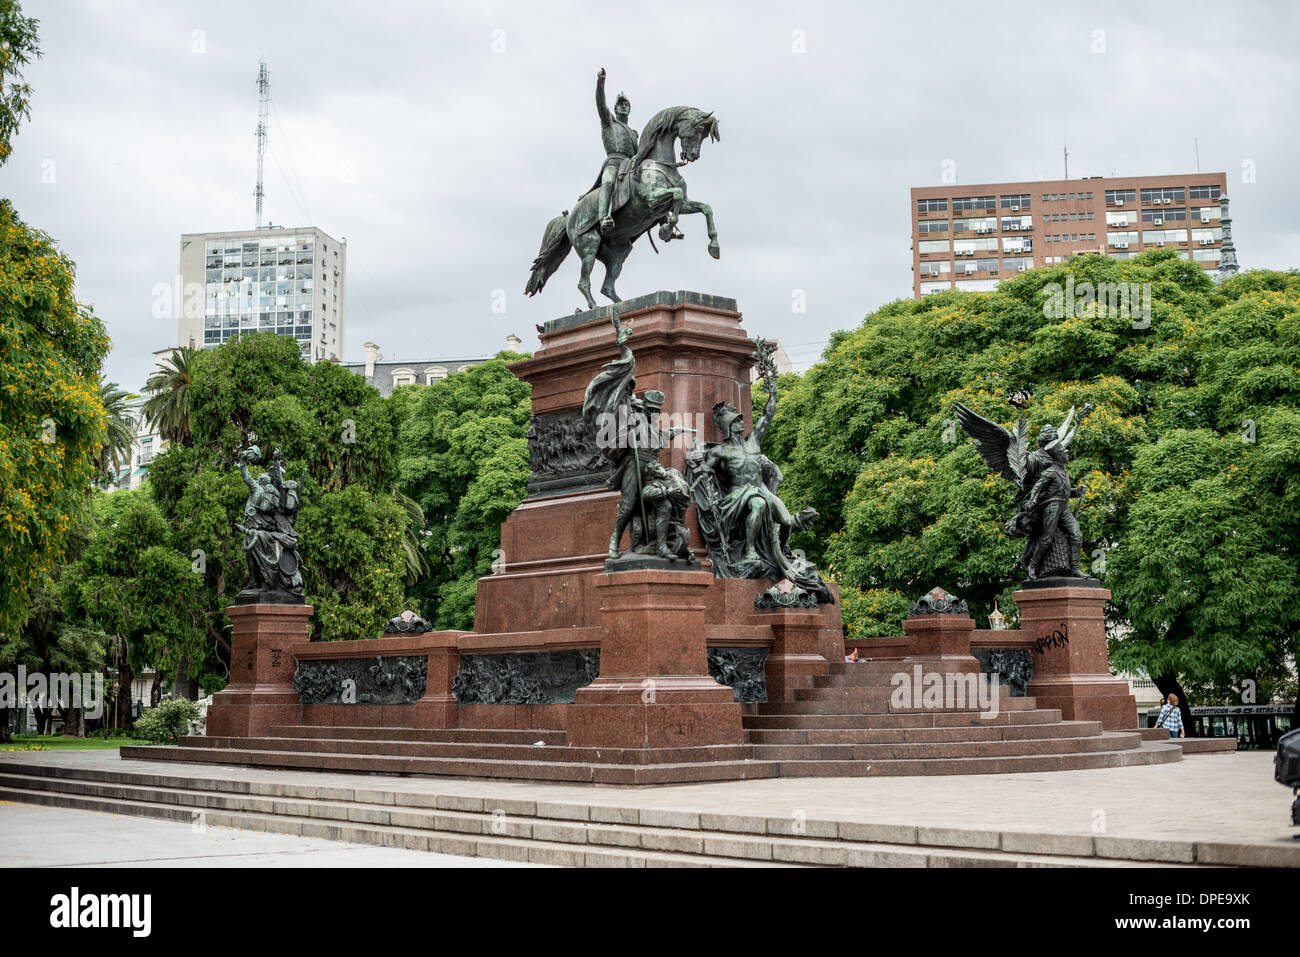 BUENOS AIRES, Argentina - Jose de San Martín Statue in Plaza San Martin in downtown Buenos Aires Argentina. - Stock Image